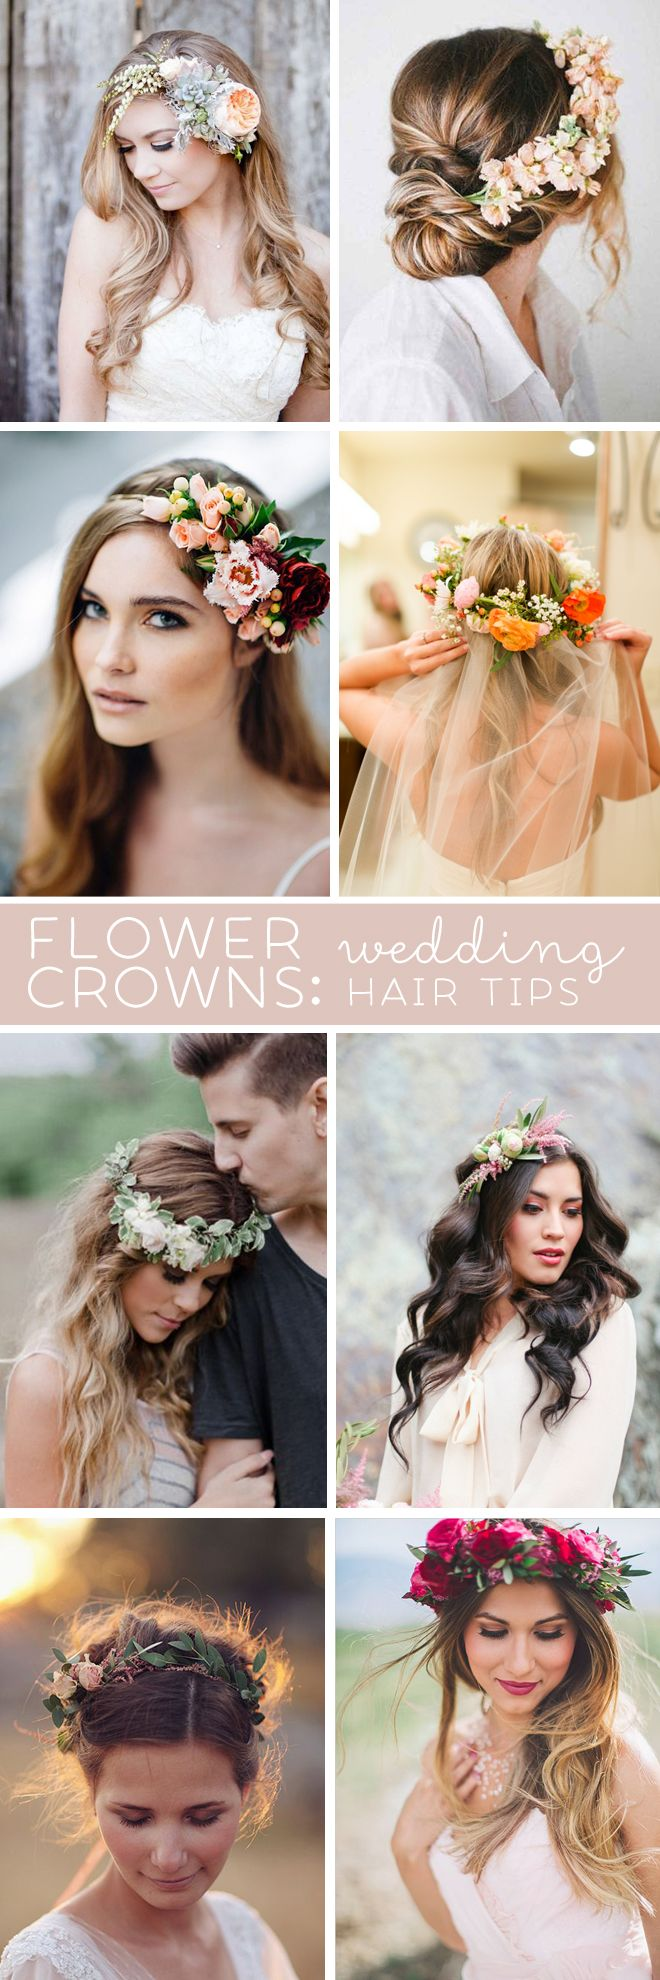 best 25+ flower crown wedding ideas on pinterest | flower crown